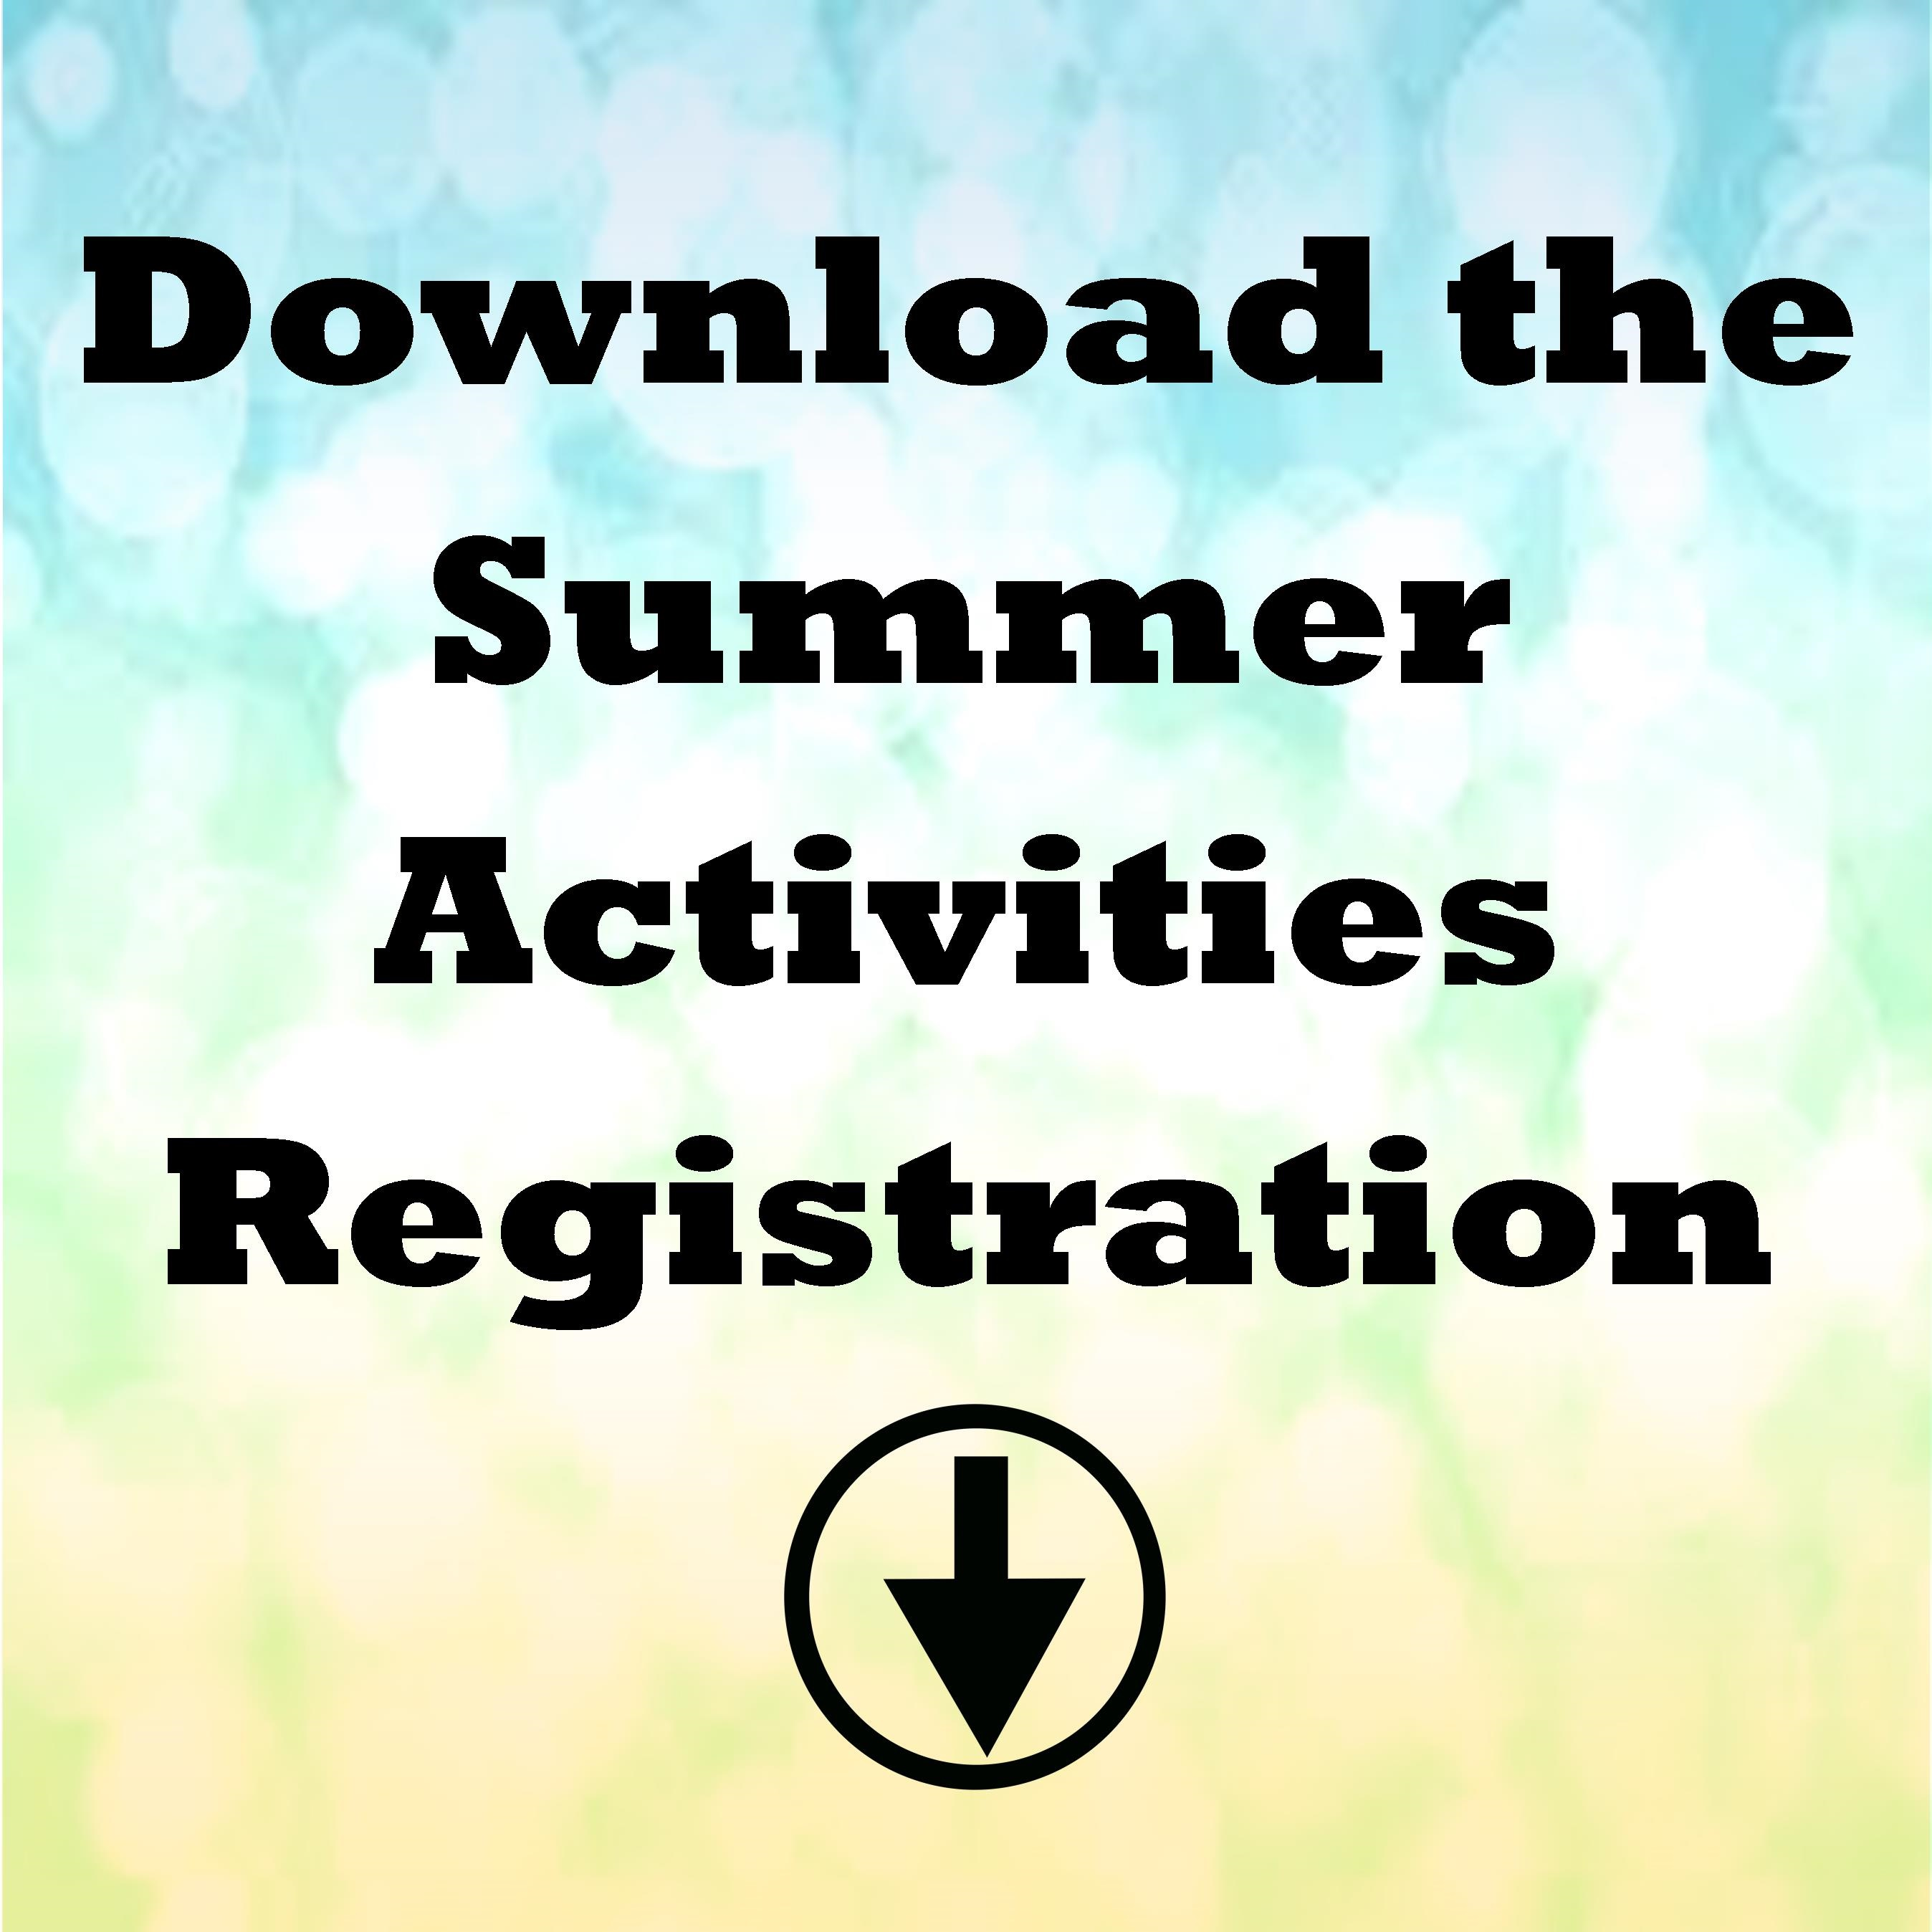 Download the Summer Activities Registration